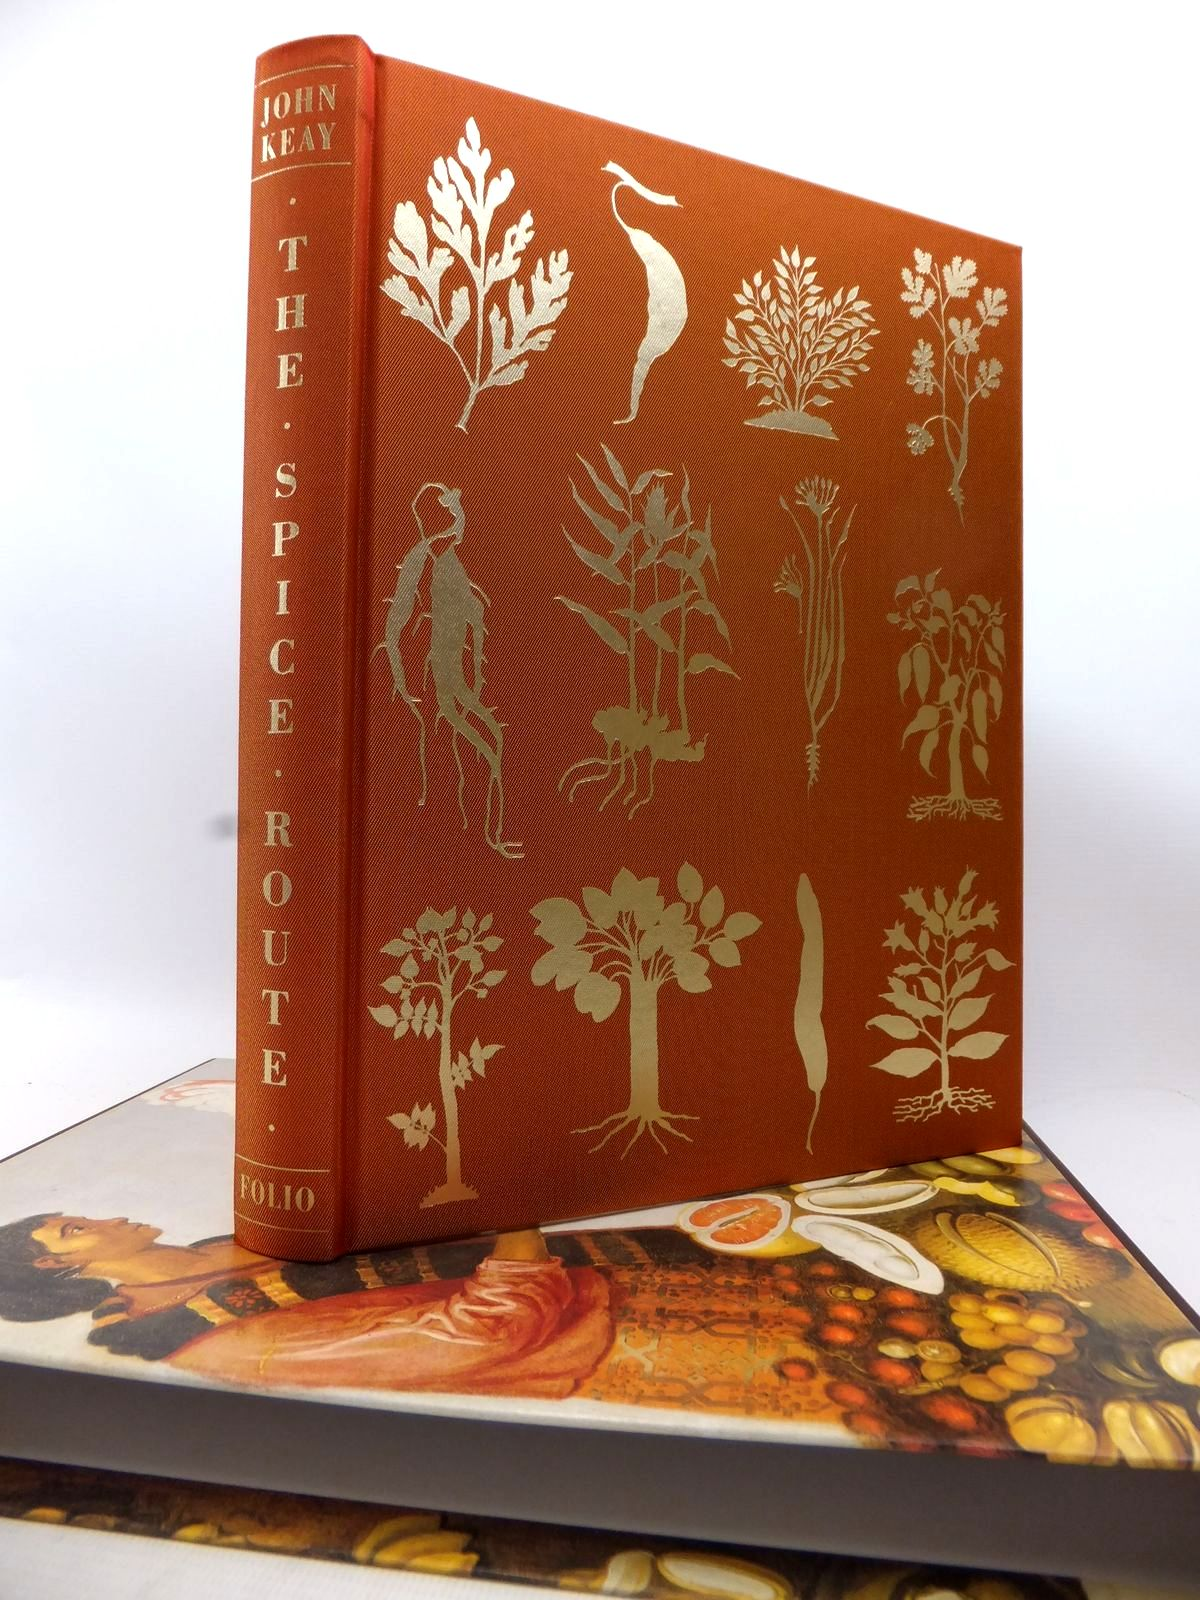 Photo of THE SPICE ROUTE written by Keay, John published by Folio Society (STOCK CODE: 1813947)  for sale by Stella & Rose's Books